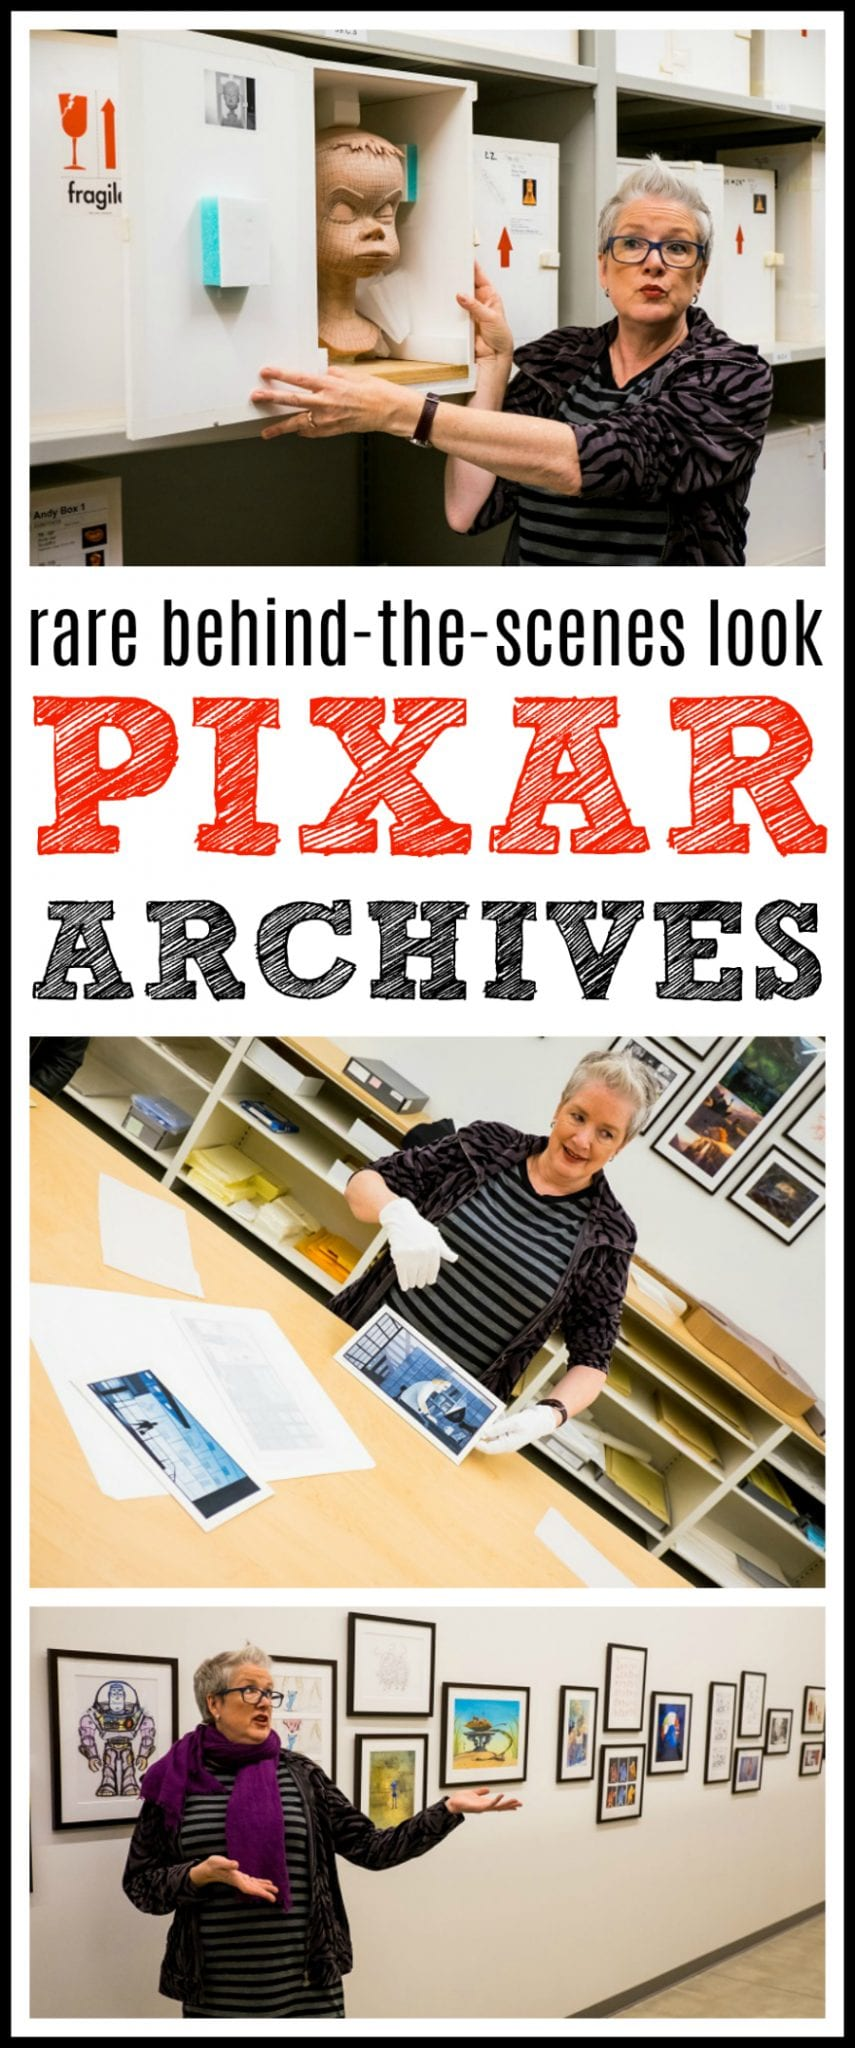 Pixar archives fun facts